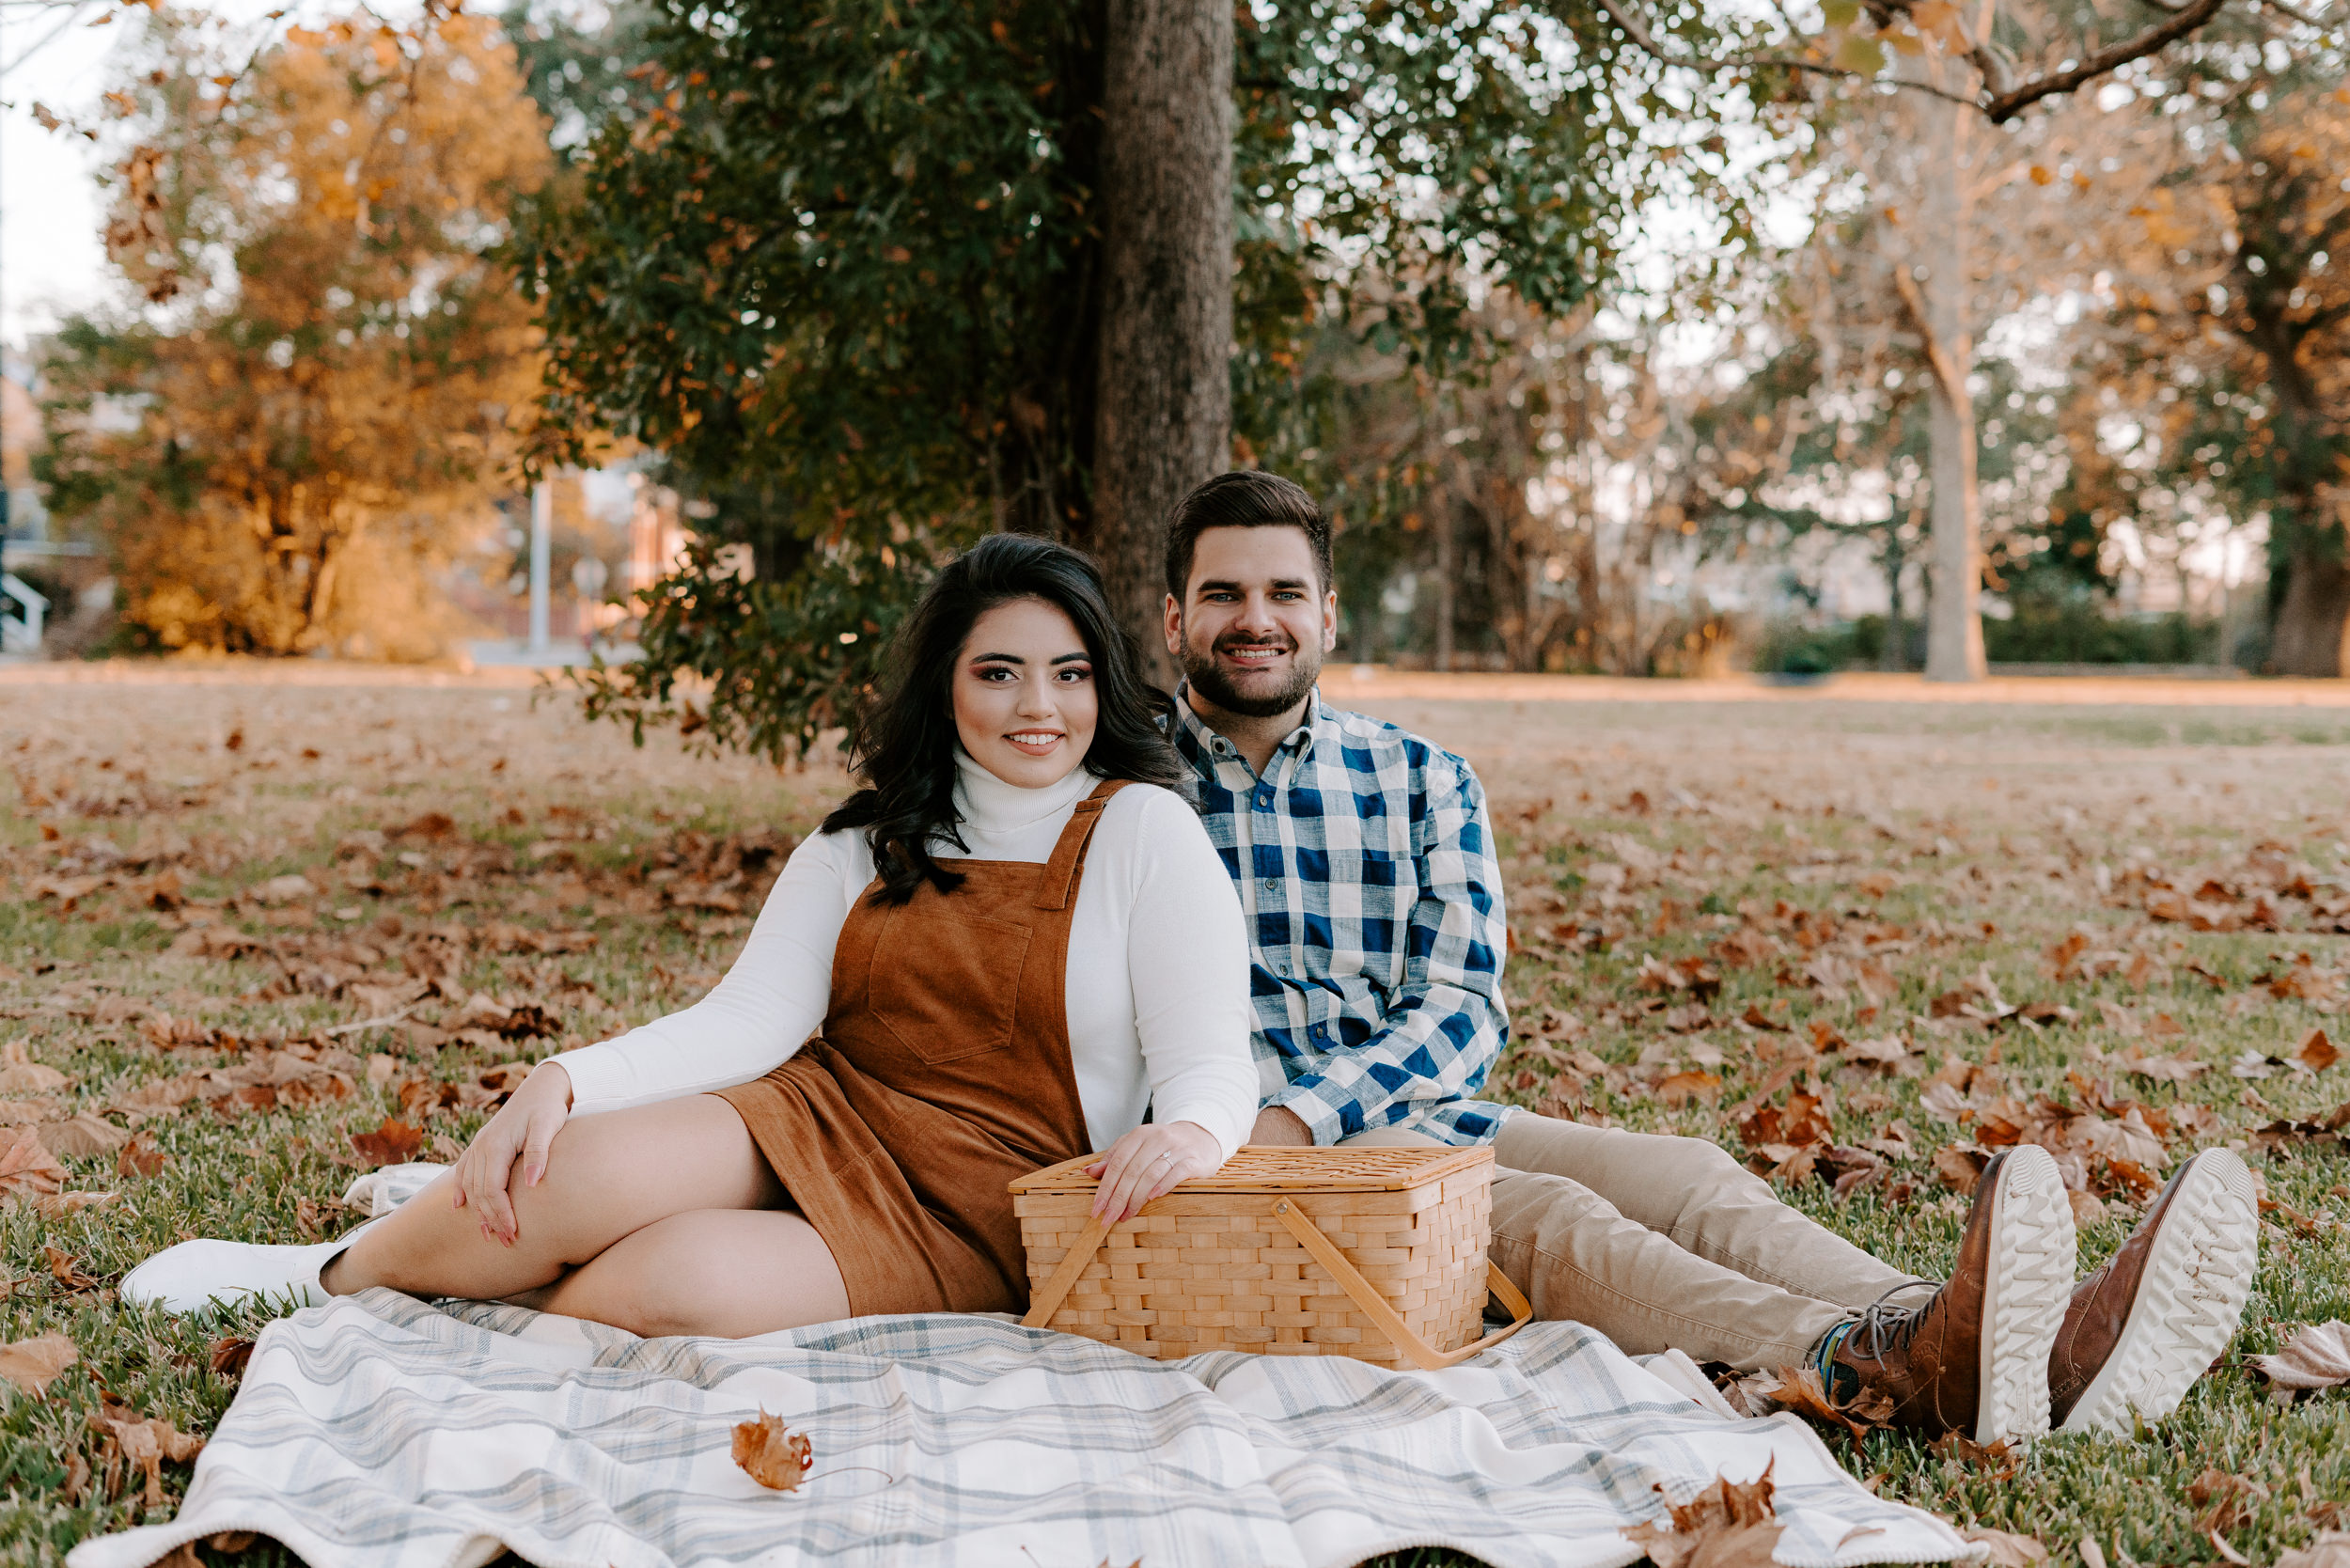 lake-charles-photography-engagements-intimate-session1.jpg